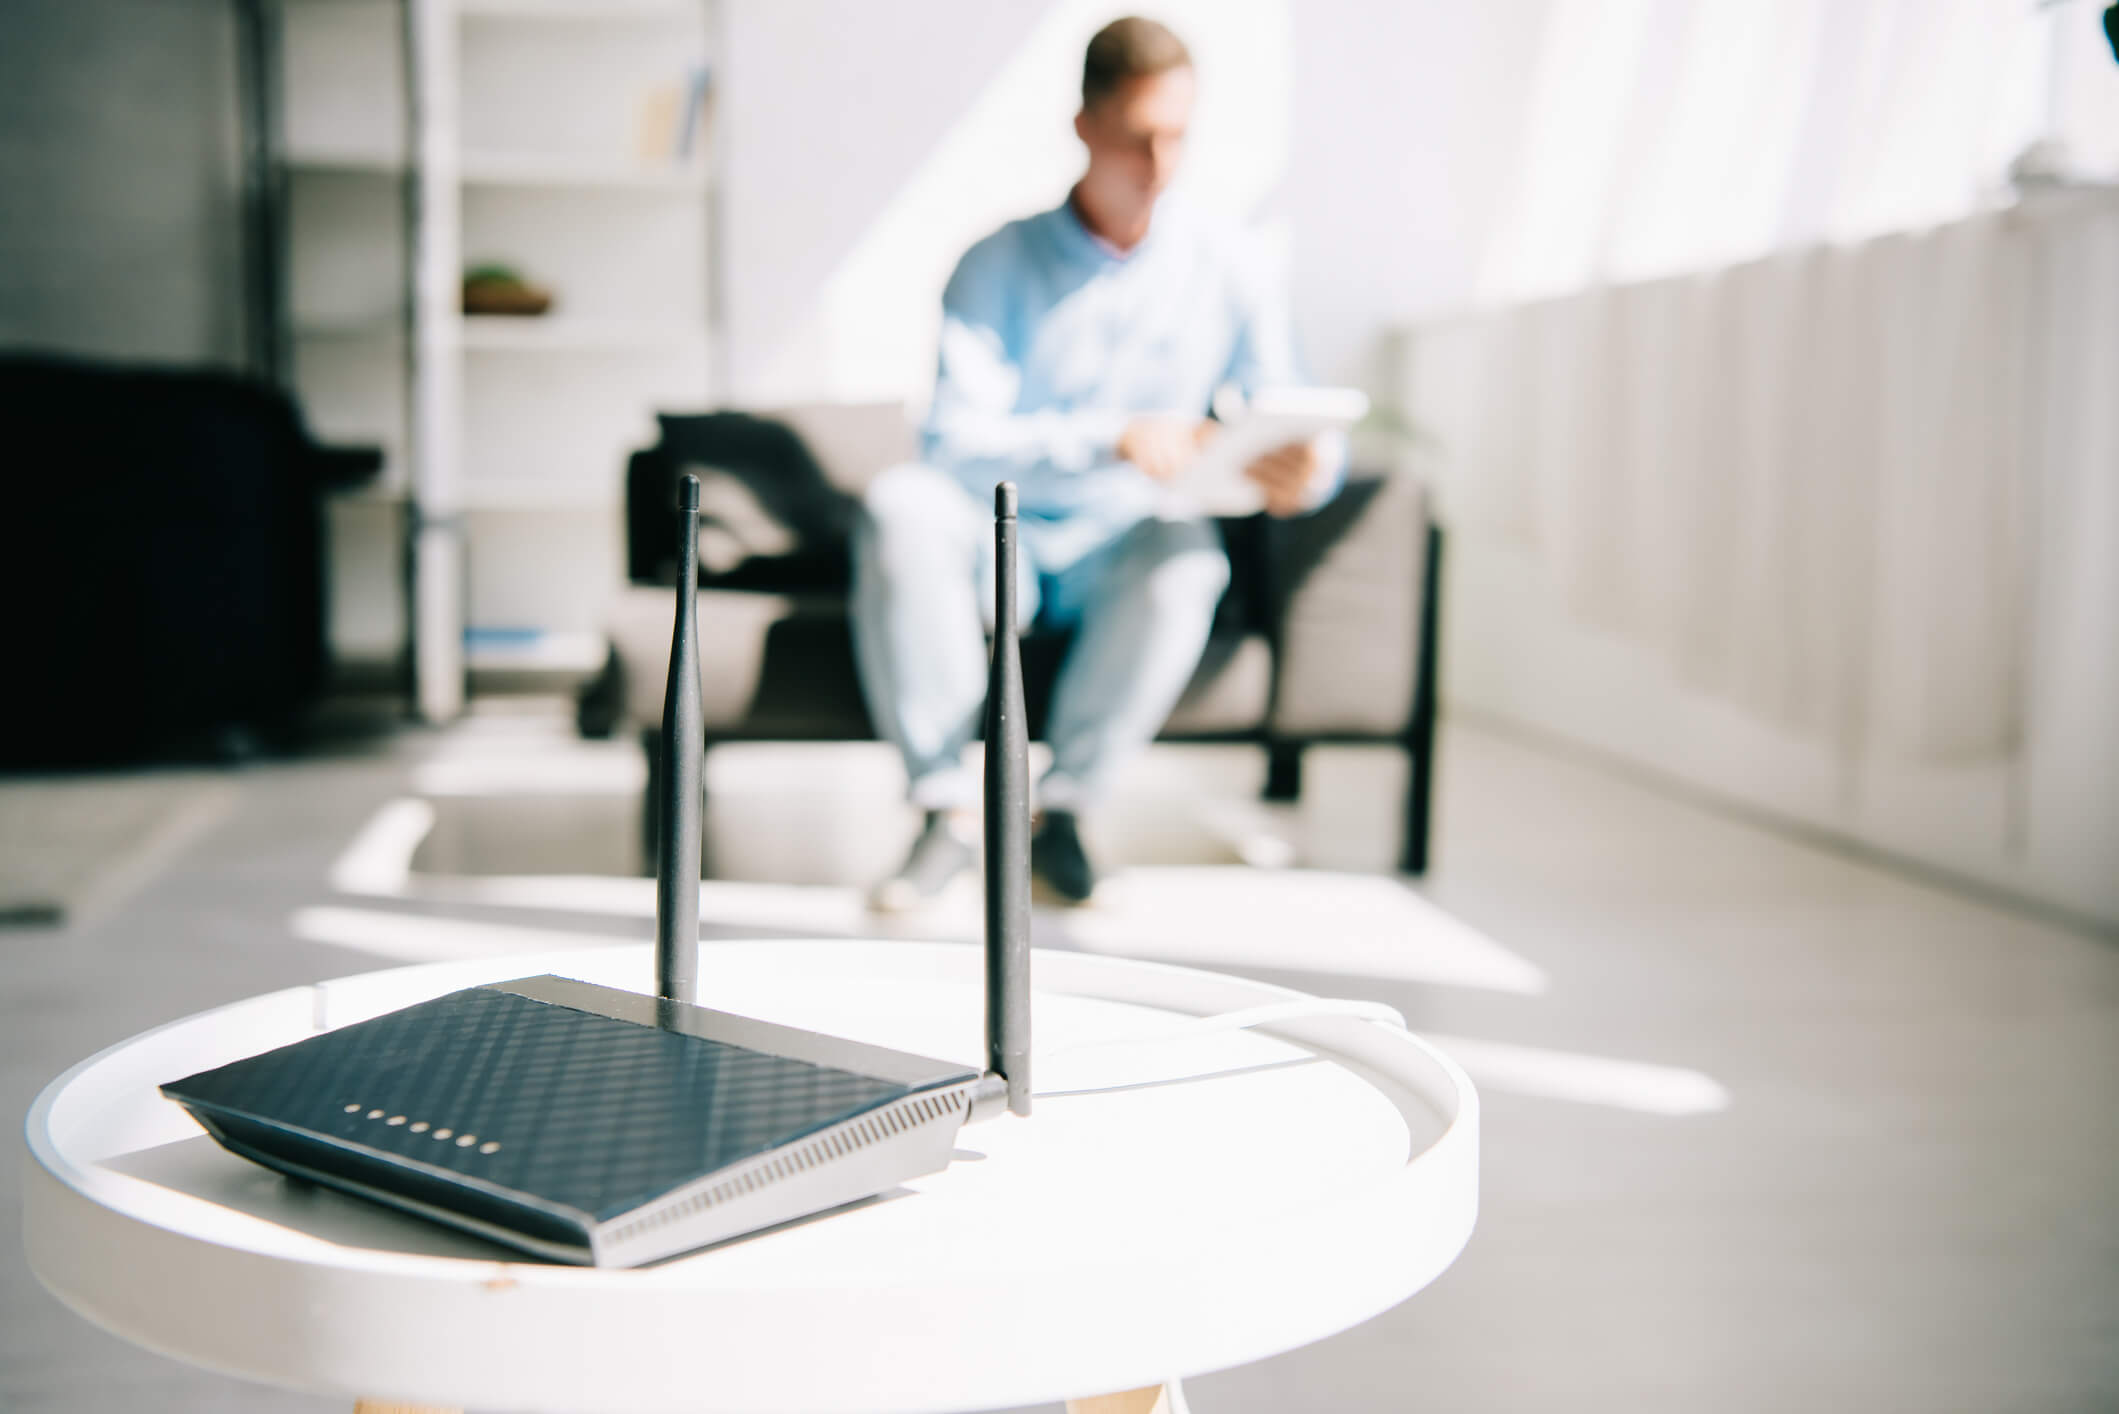 Router with VPN on table with person in the background